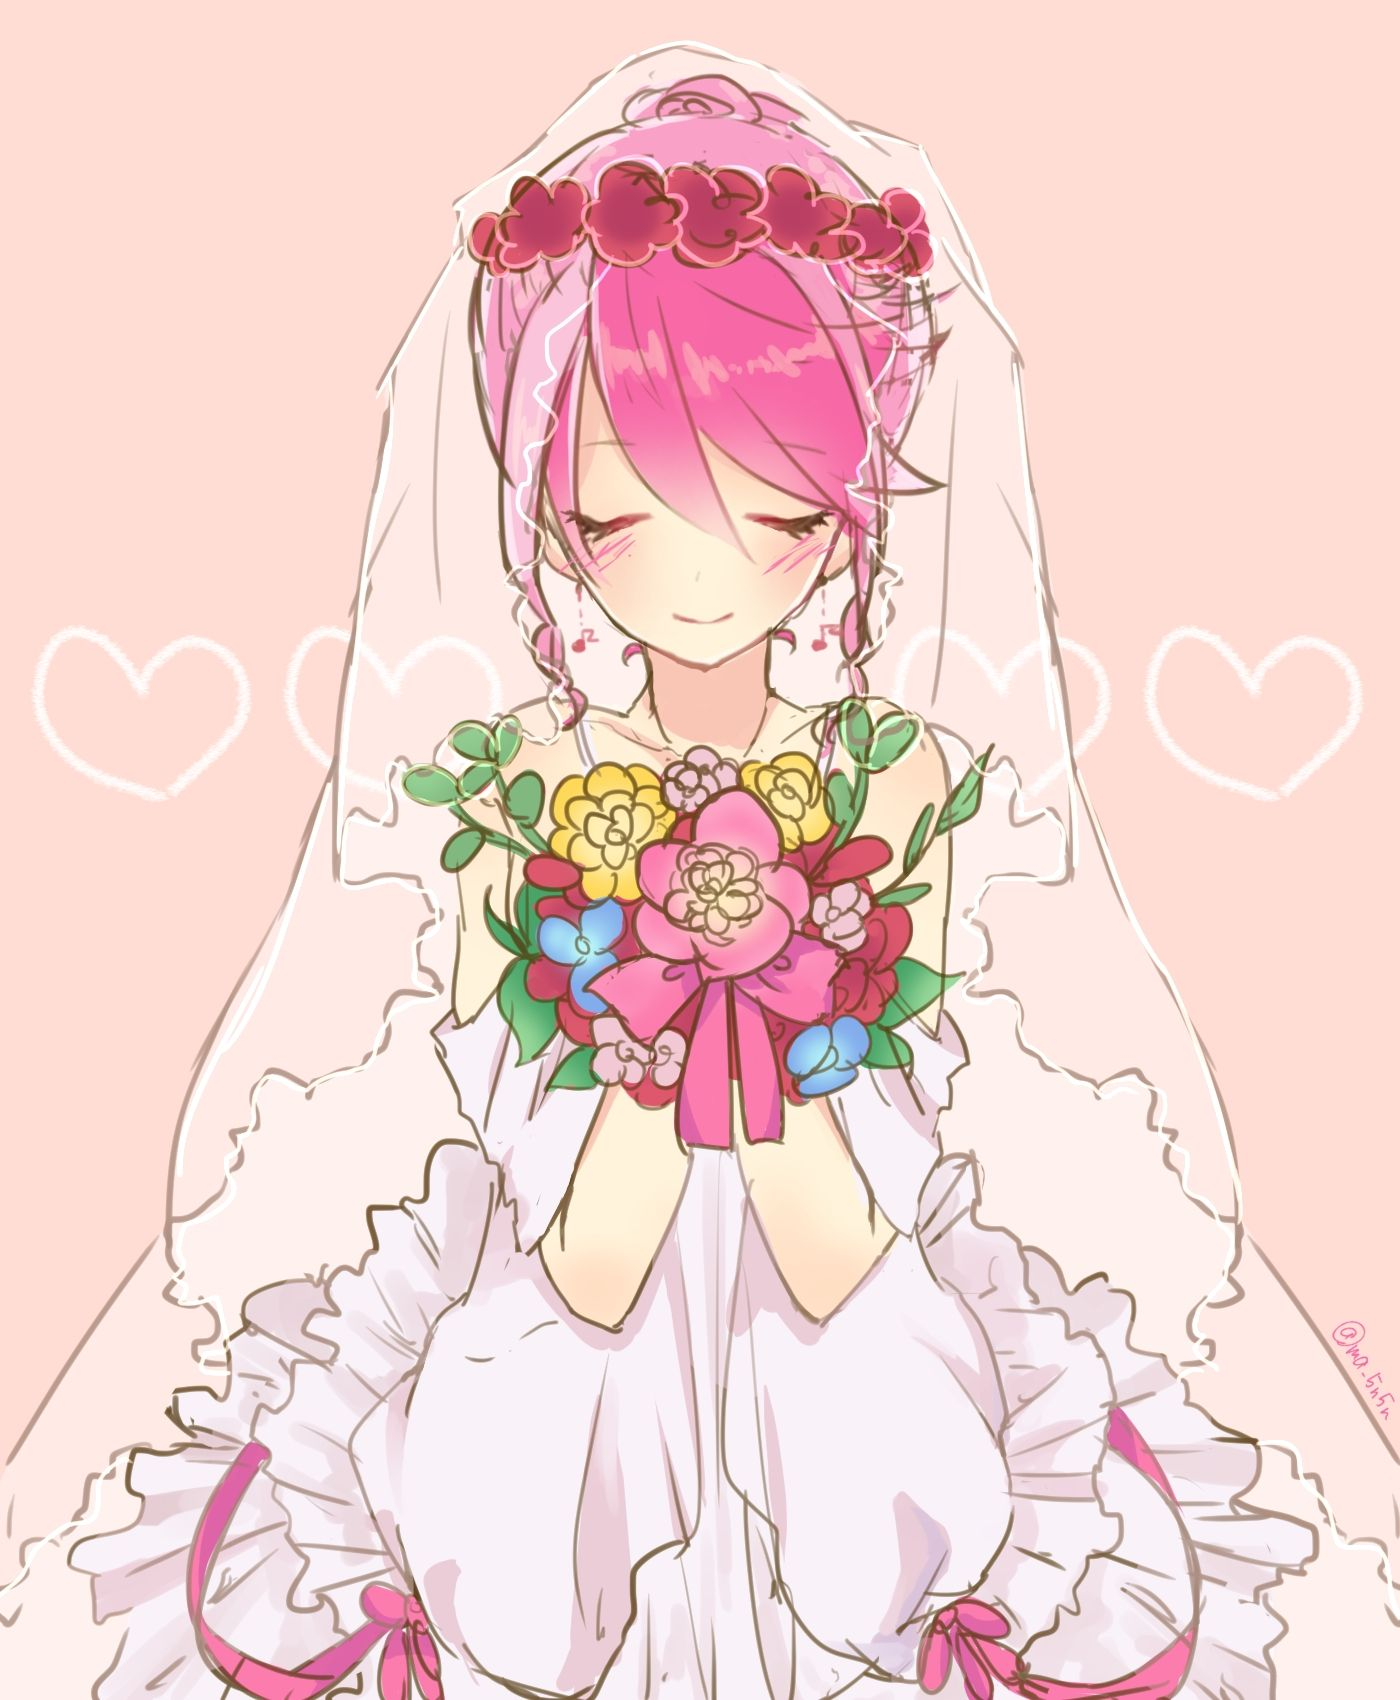 View full-size (1400x1700 1,271 kB.) | Anime: Maids and Brides ...